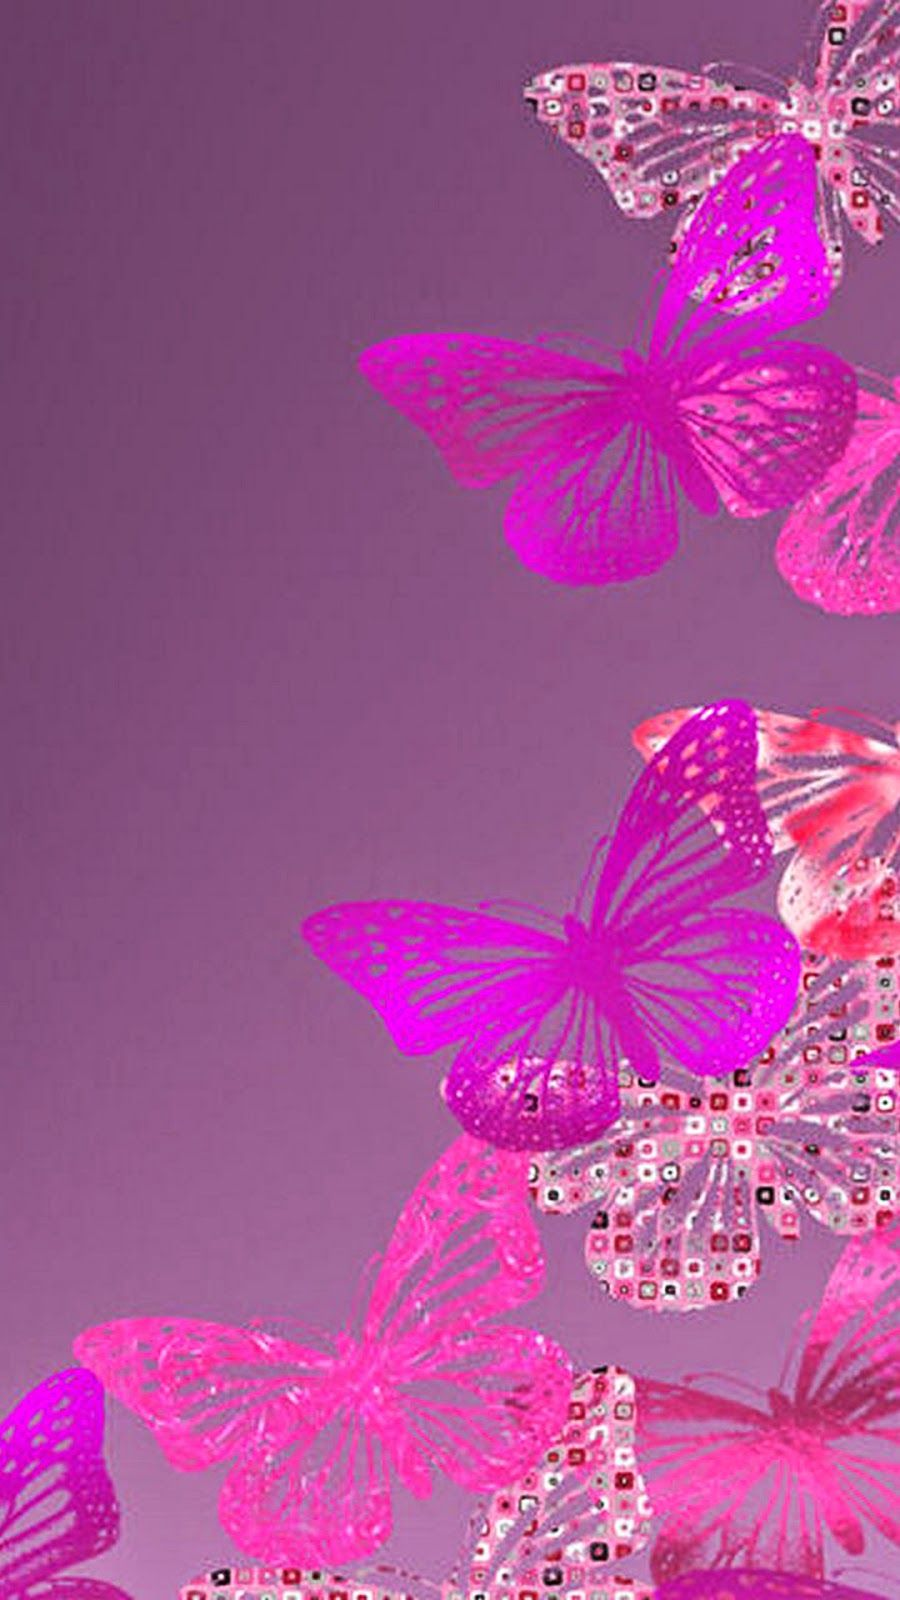 Free Butterfly Wallpaper , Pink Hd Wallpaper For Iphone 6